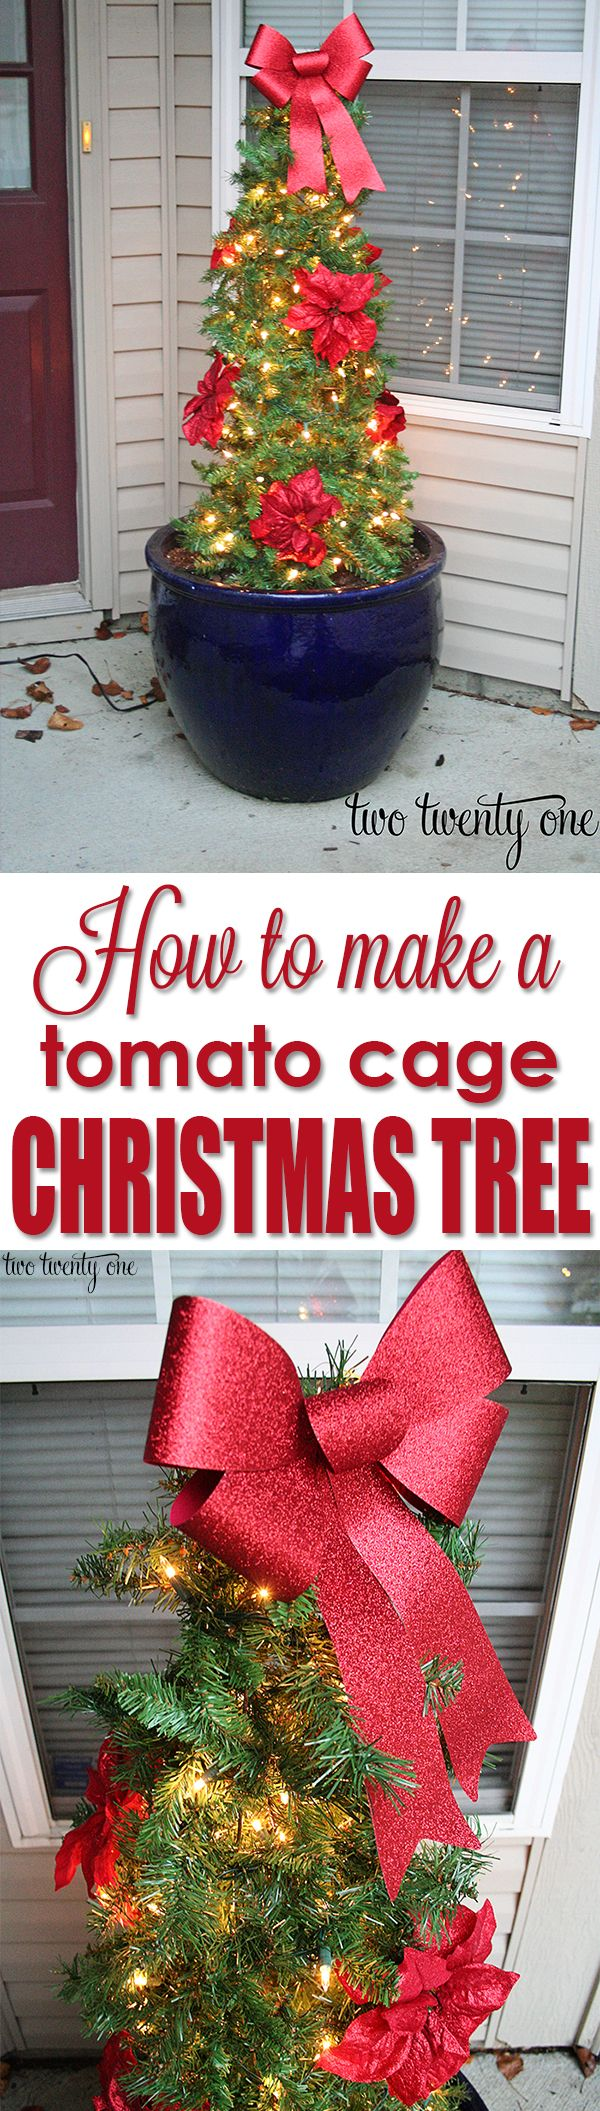 GREAT tutorial!  It only cost $14 to make this!